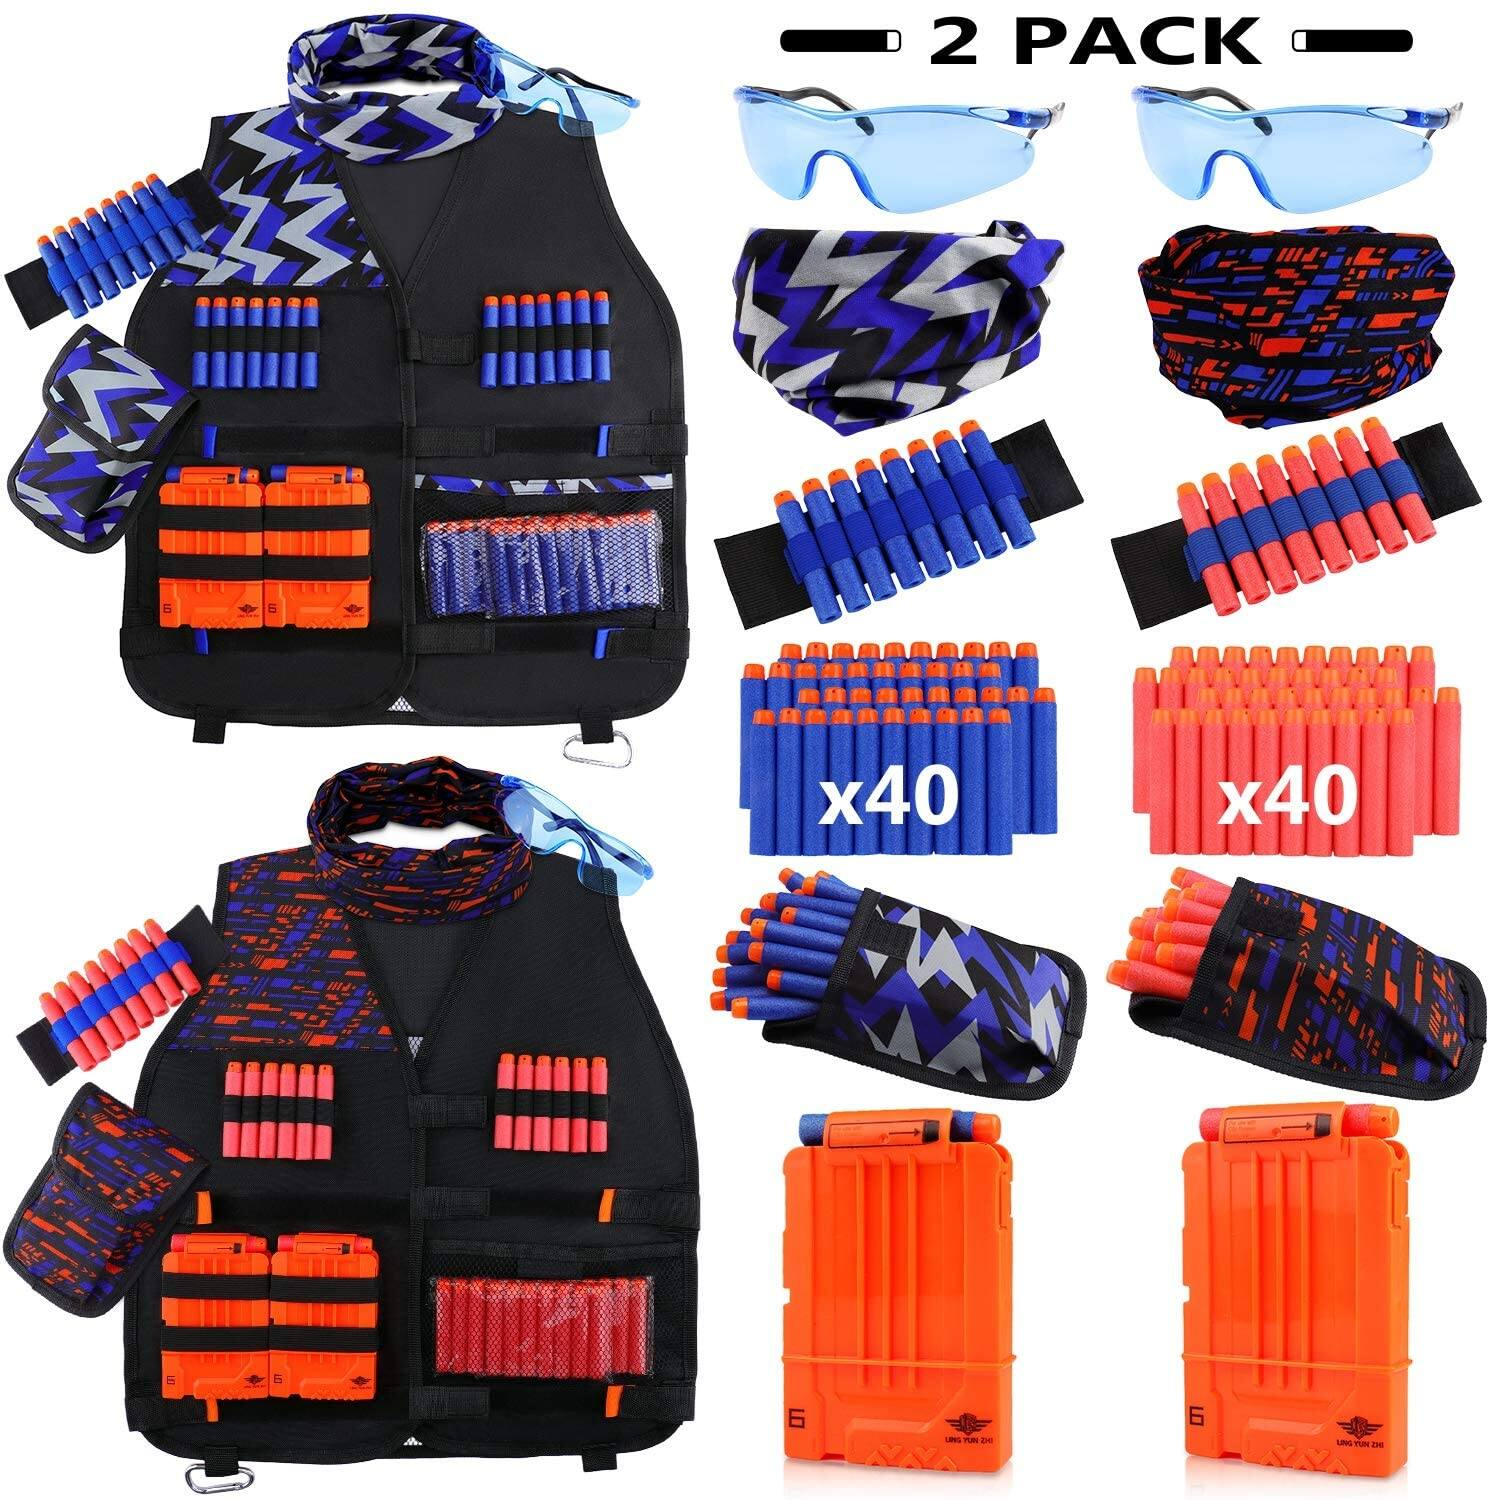 2pks Kids Tactical Vest Kit (Compatible with Nerf Guns N-Strike Elite Series) for $17.99 + Free Shipping